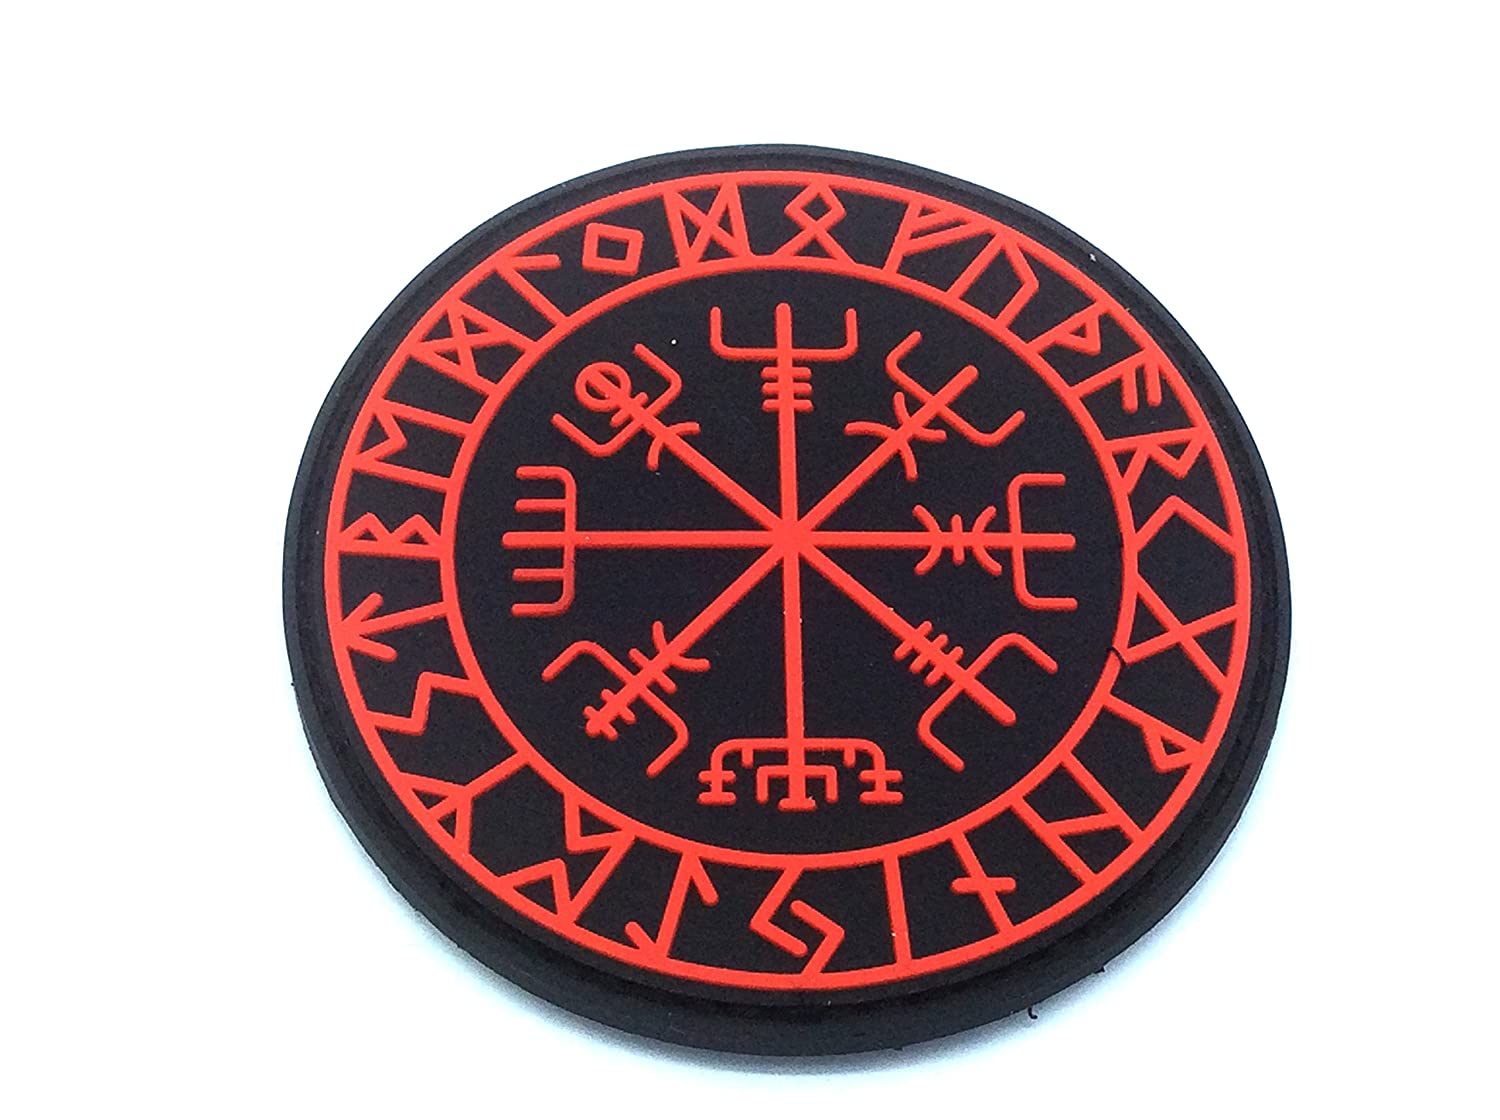 2AFTER1 Aegishjalmr Viking Helm of Awe ACU Subdued Norse Heathen Rune Morale PVC Rubber Fastener Patch